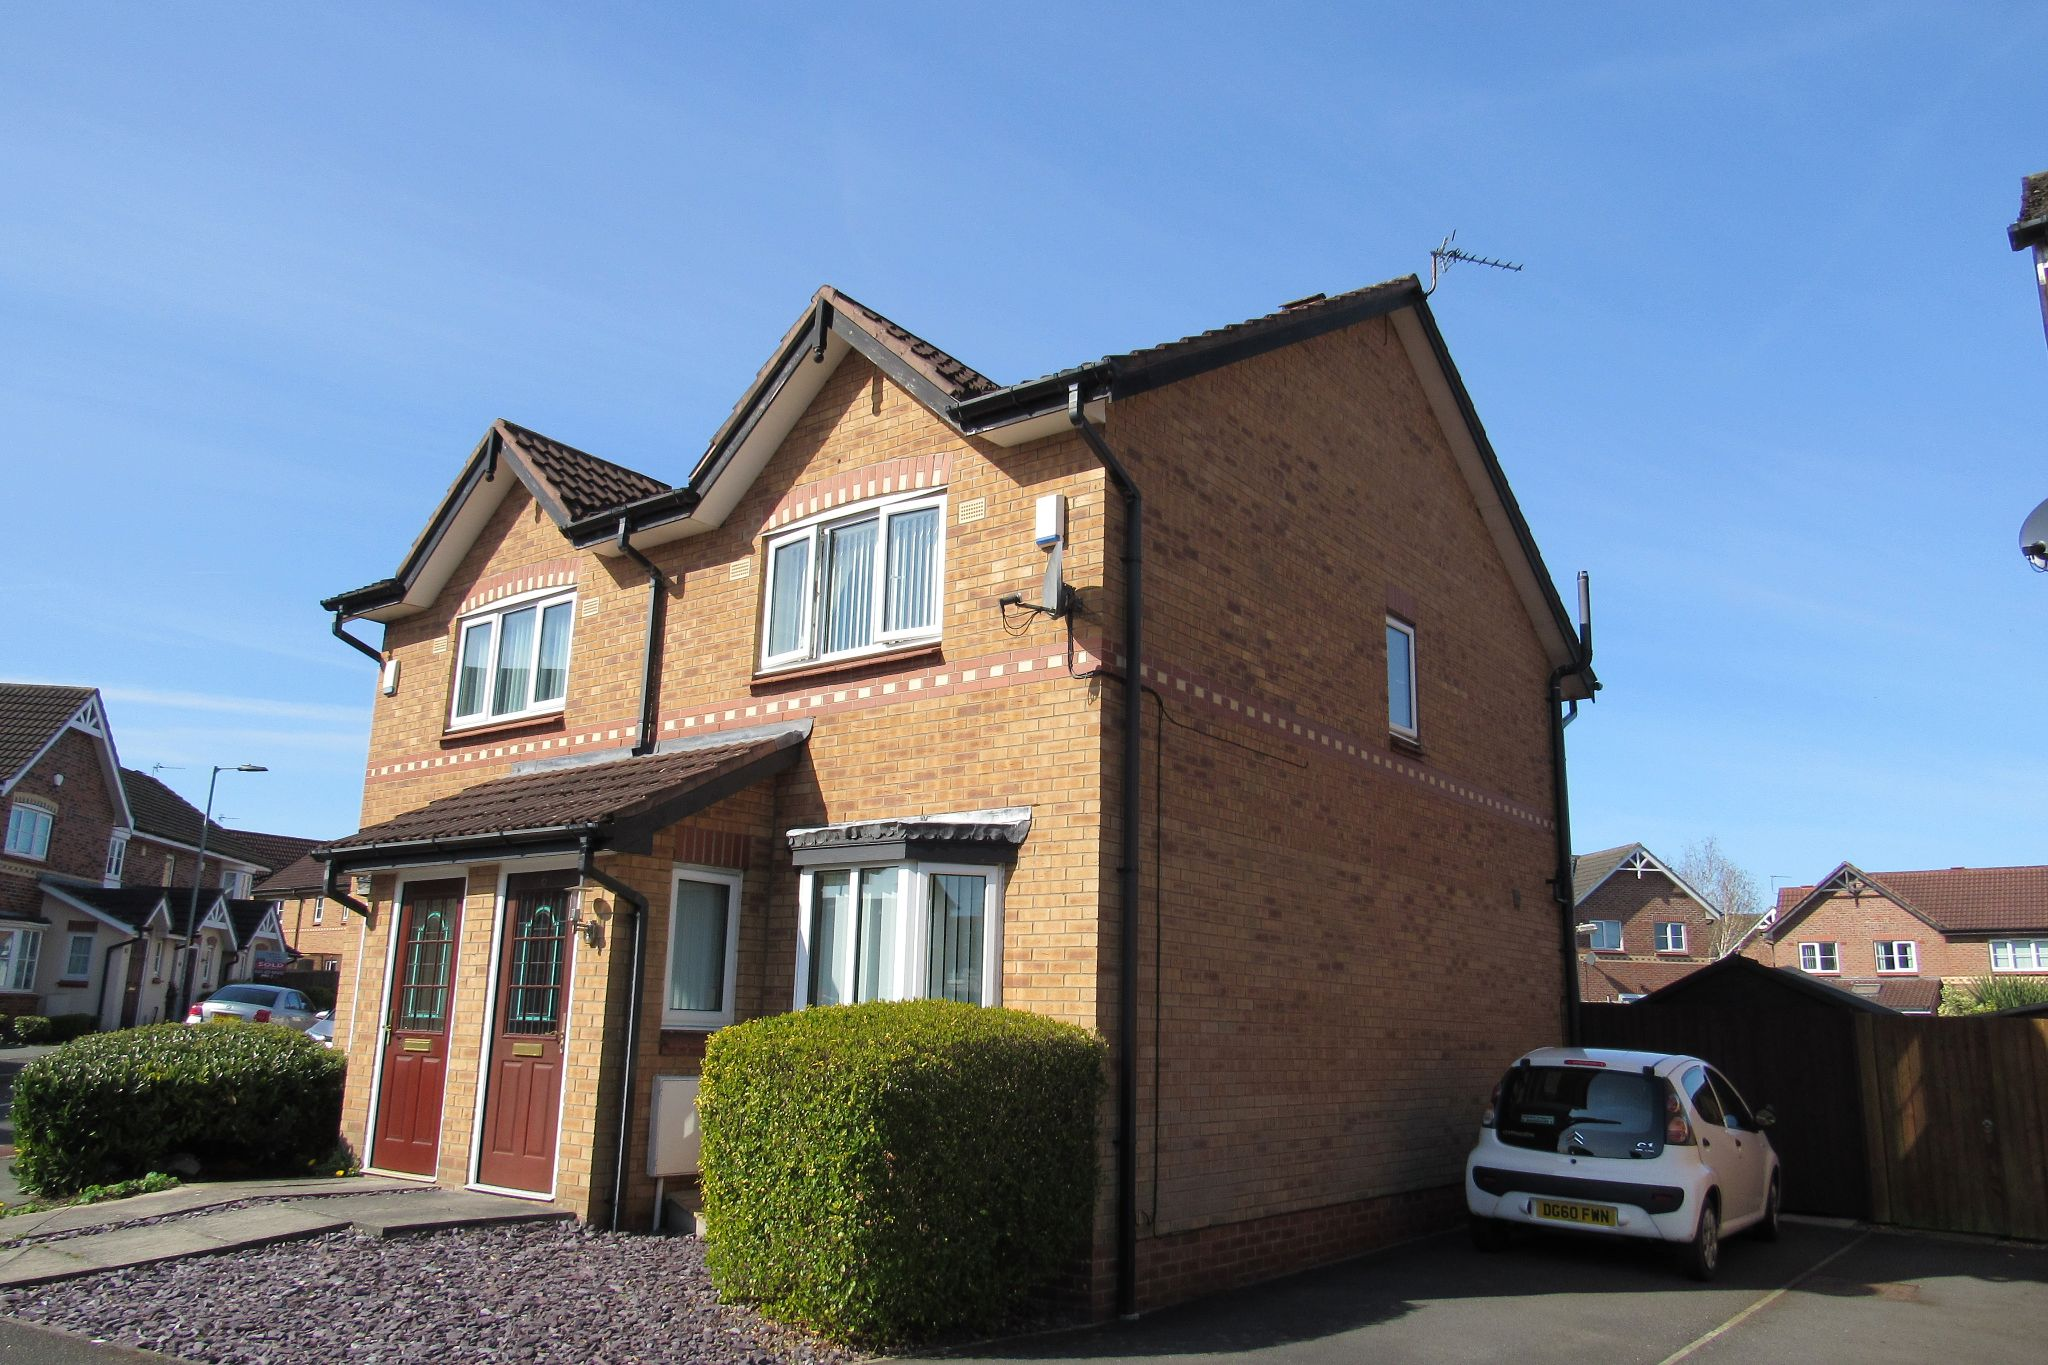 2 bedroom semi-detached house SSTC in Manchester - Photograph 2.